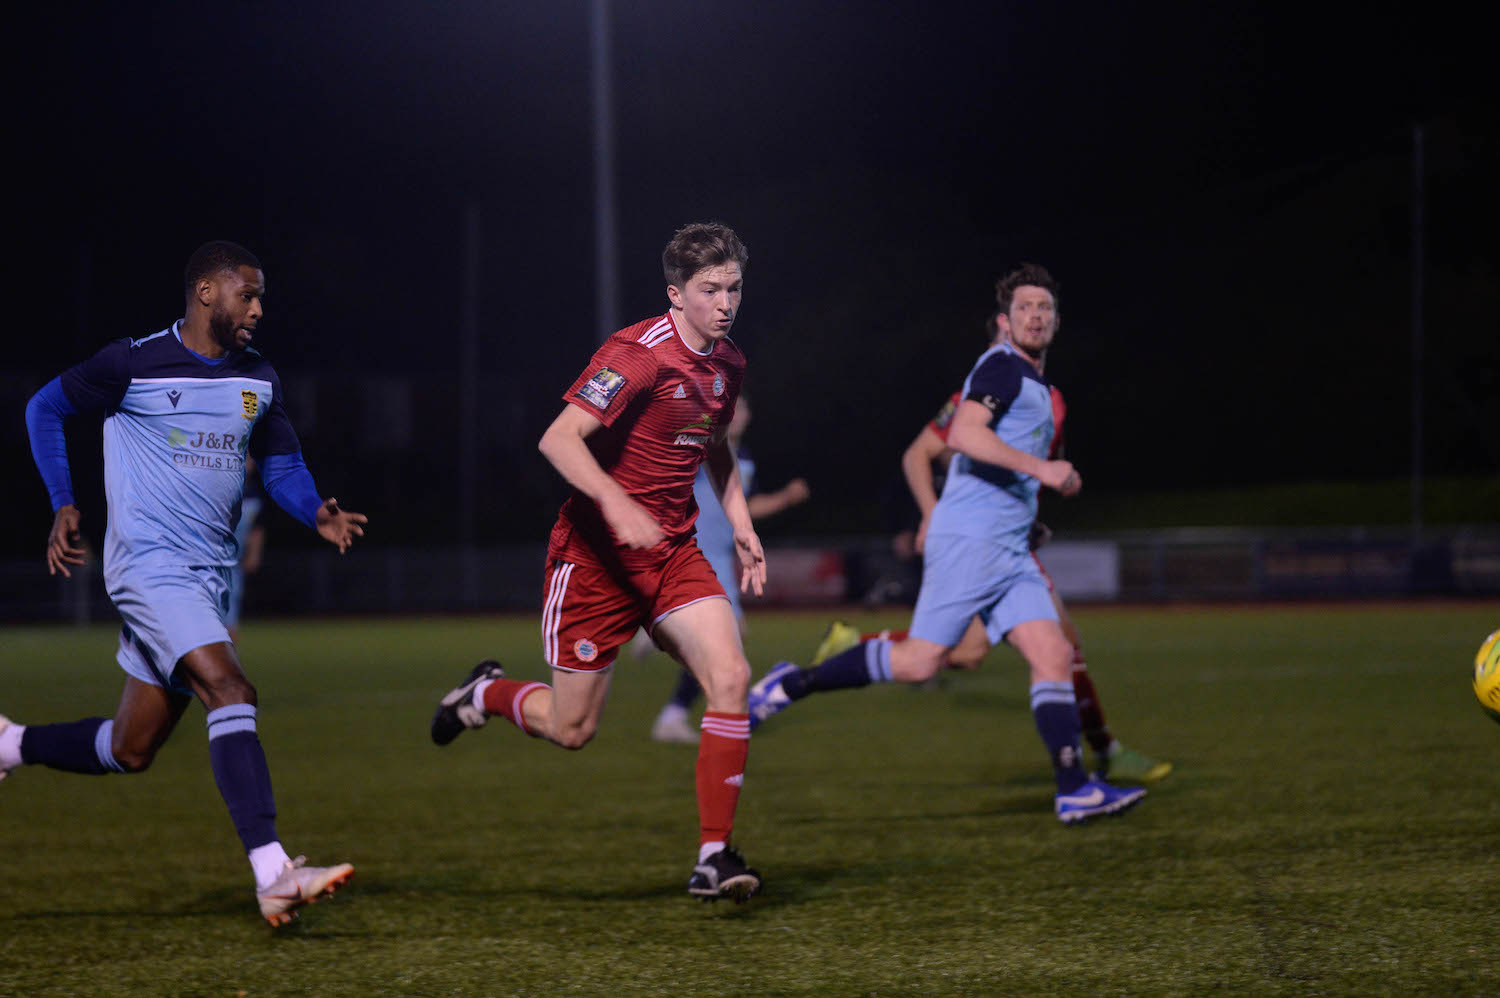 Read the full article - Ambers End Worthing's Cup Run